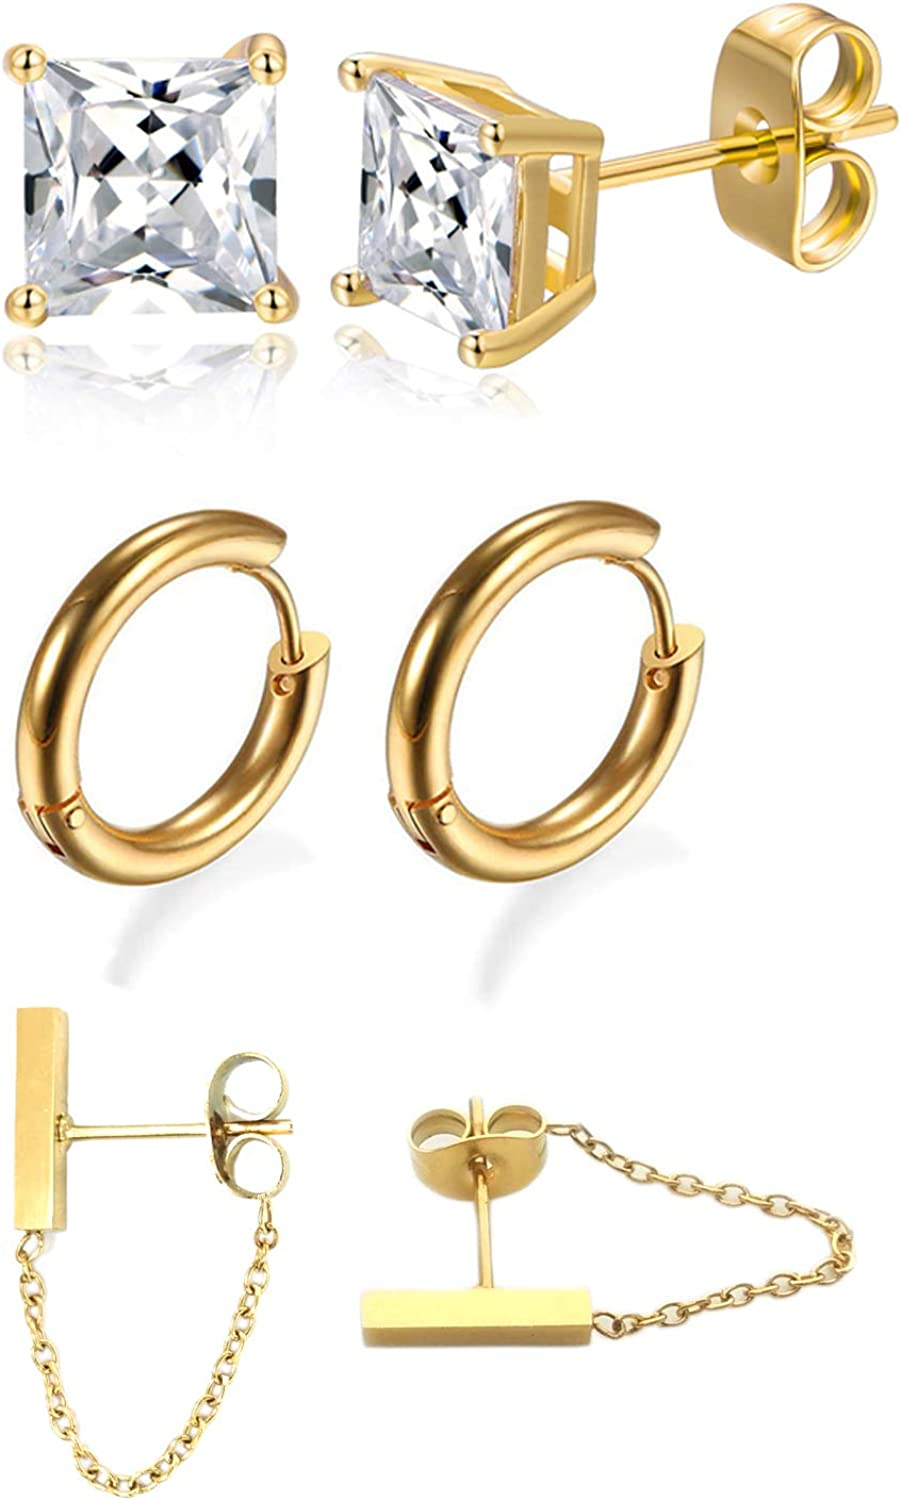 14K Gold Plated 316L Surgical Steel Hoops Ear Studs Dangle Earring Set for Men&Women 20G Hypoallergenic Piercing,Pack of 3 Pairs